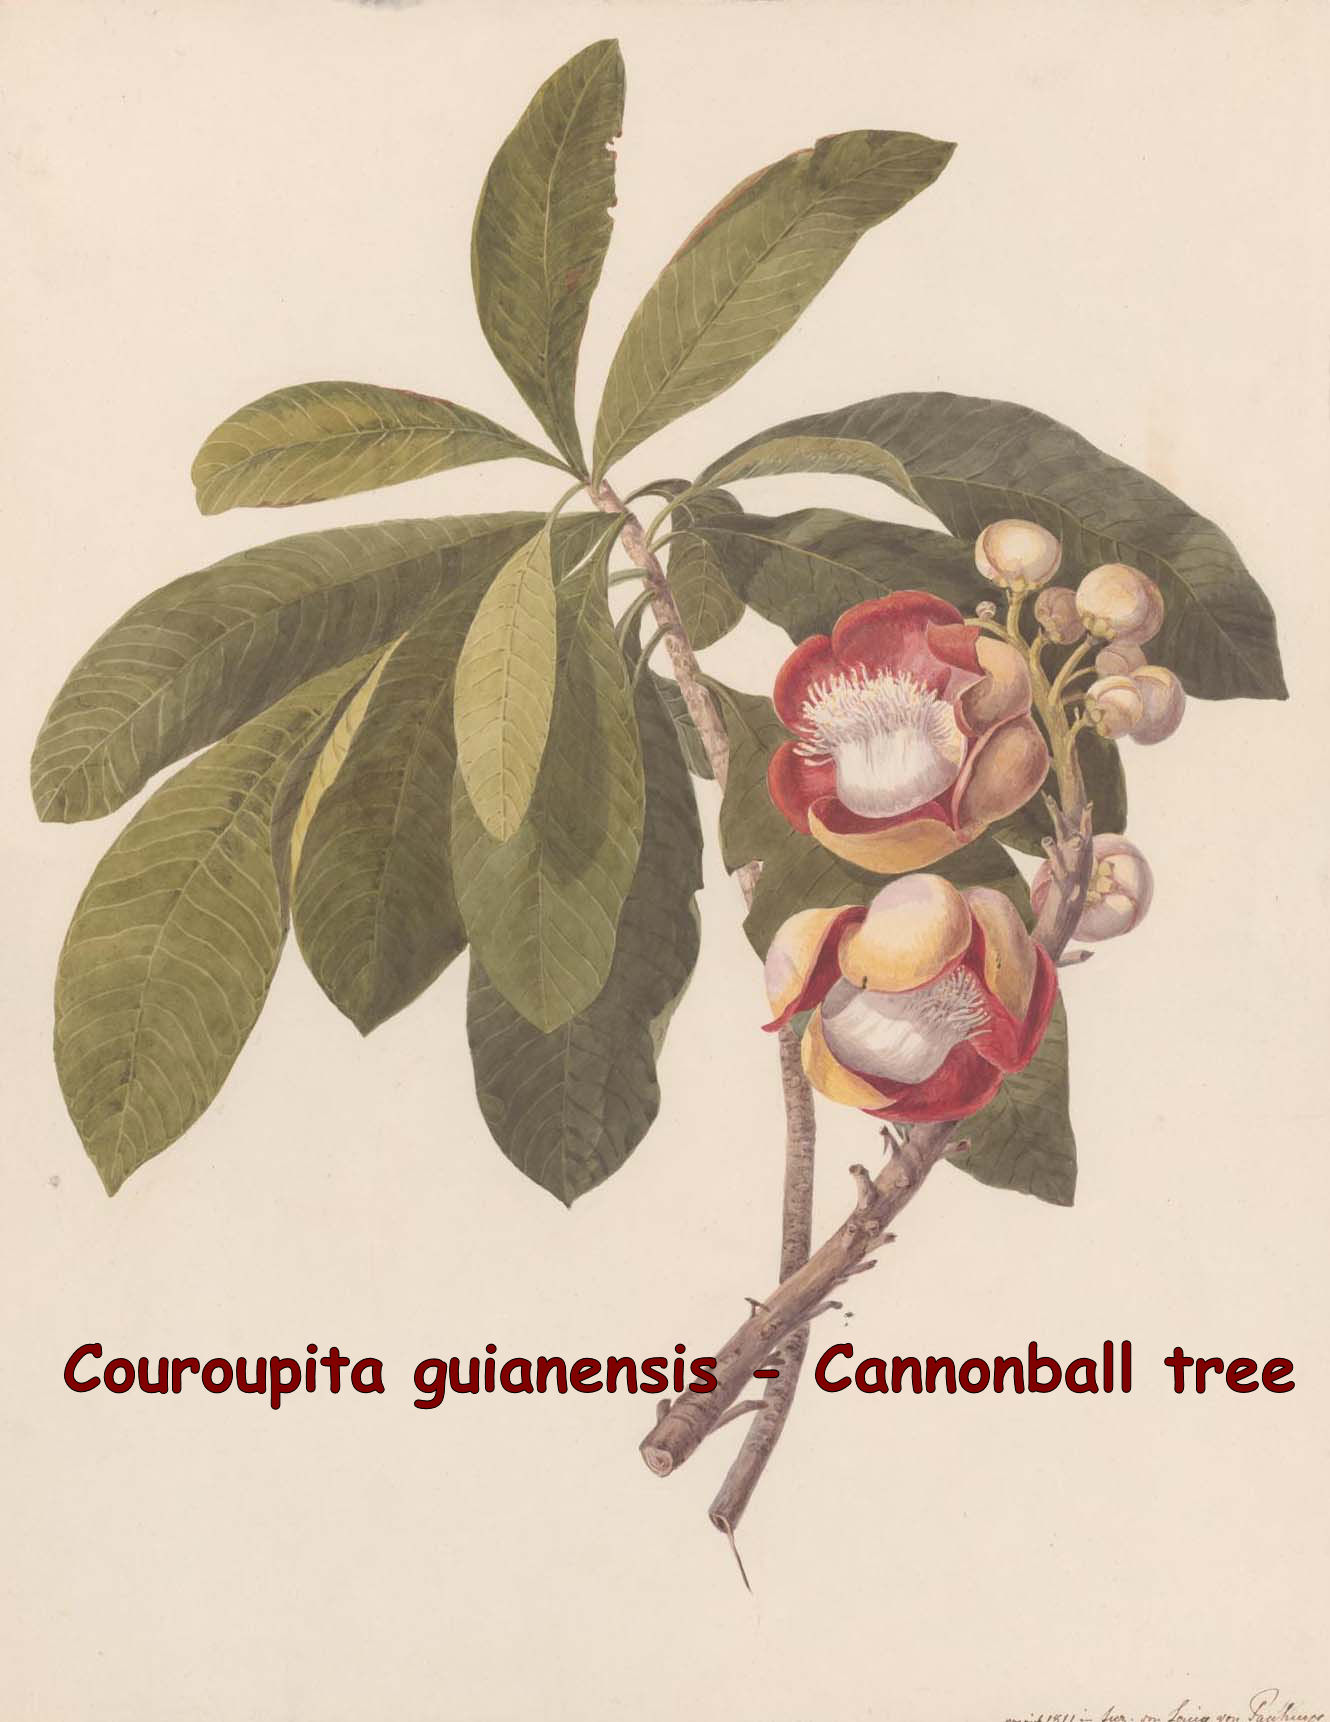 Couroupita guianensis- Cannonball tree